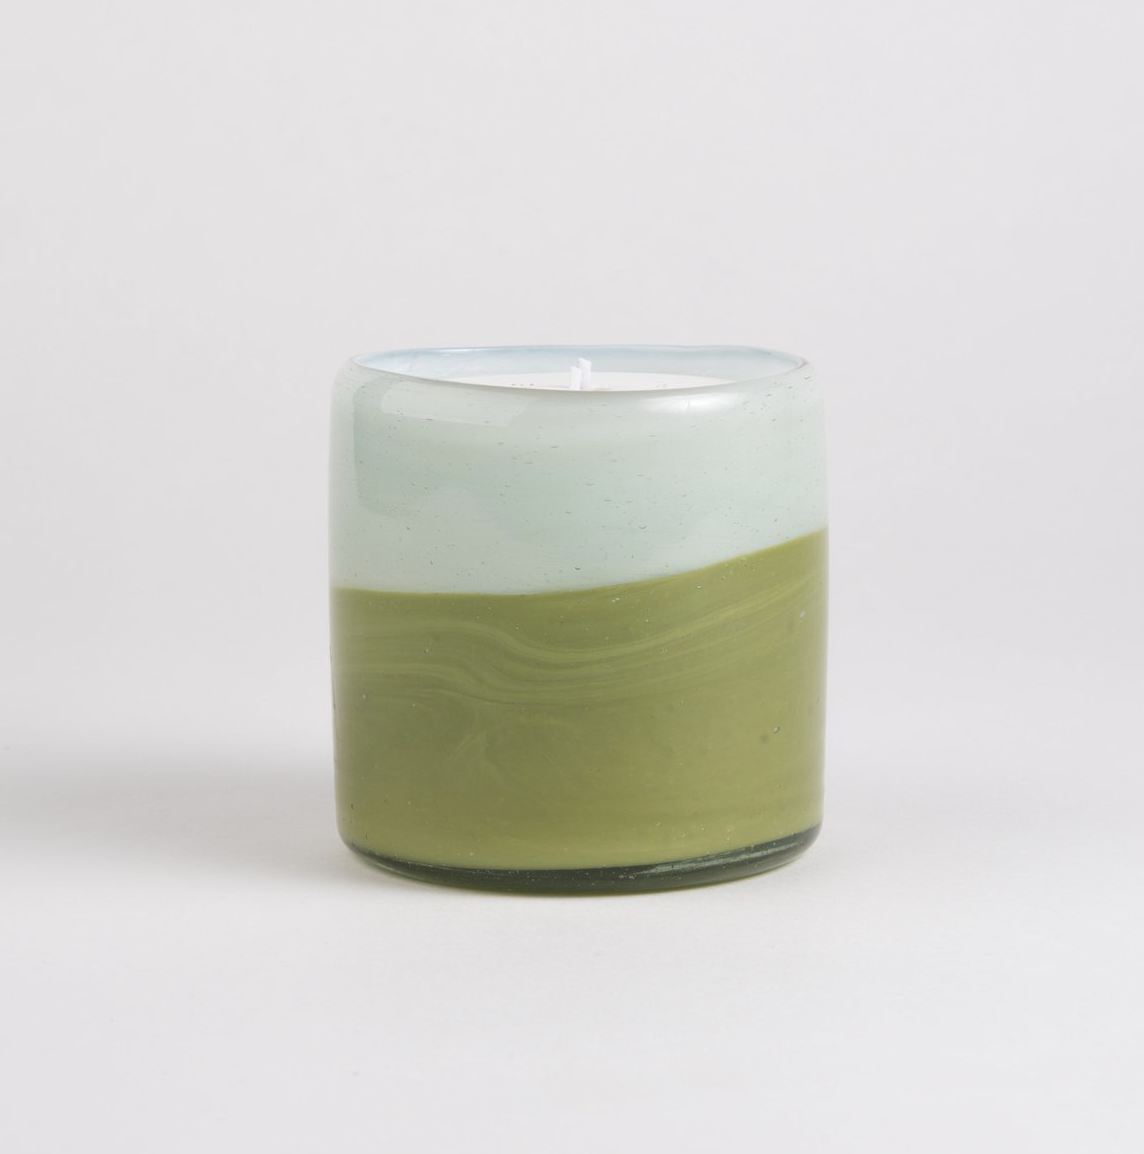 Alixx Grapefruit & Mint Candle